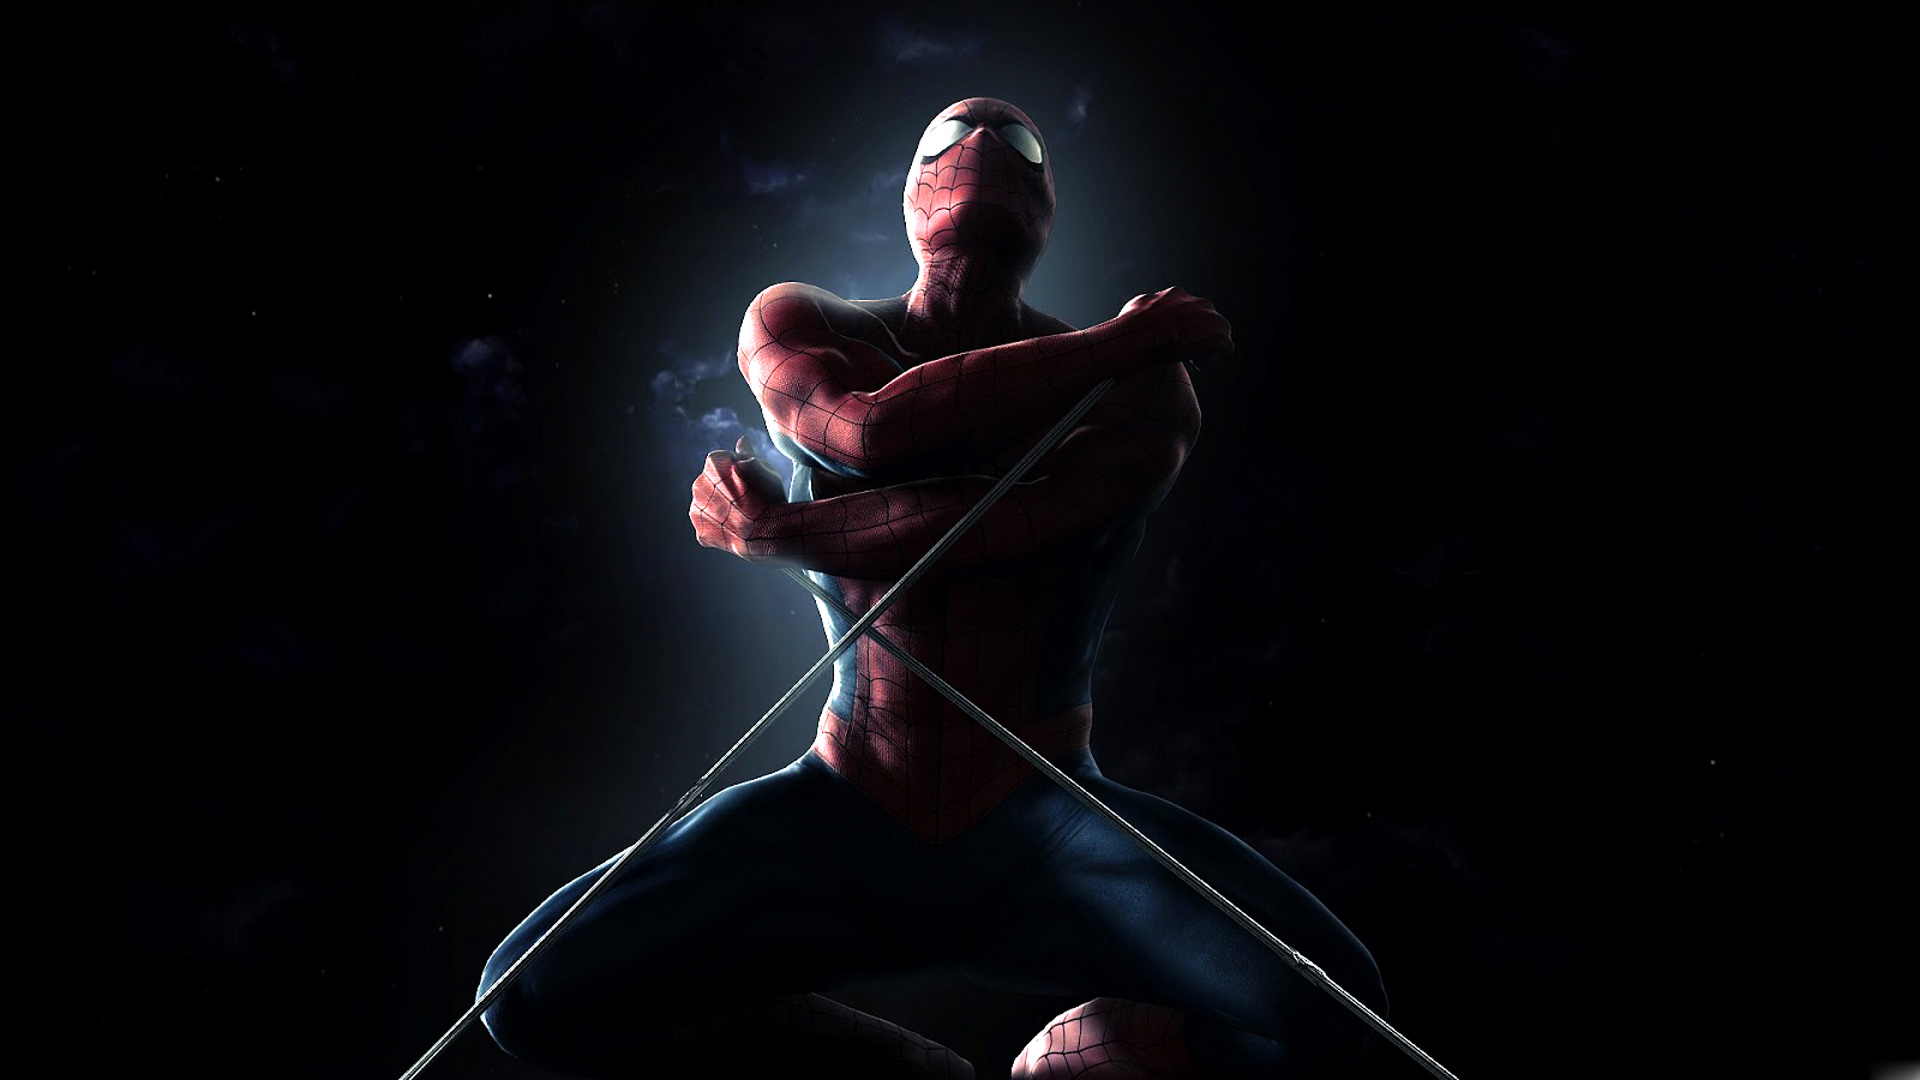 amazing spiderman 2 hd wallpaper peter parker spider man 2 hd wallpapers backgrounds 580x350 THE AMAZING